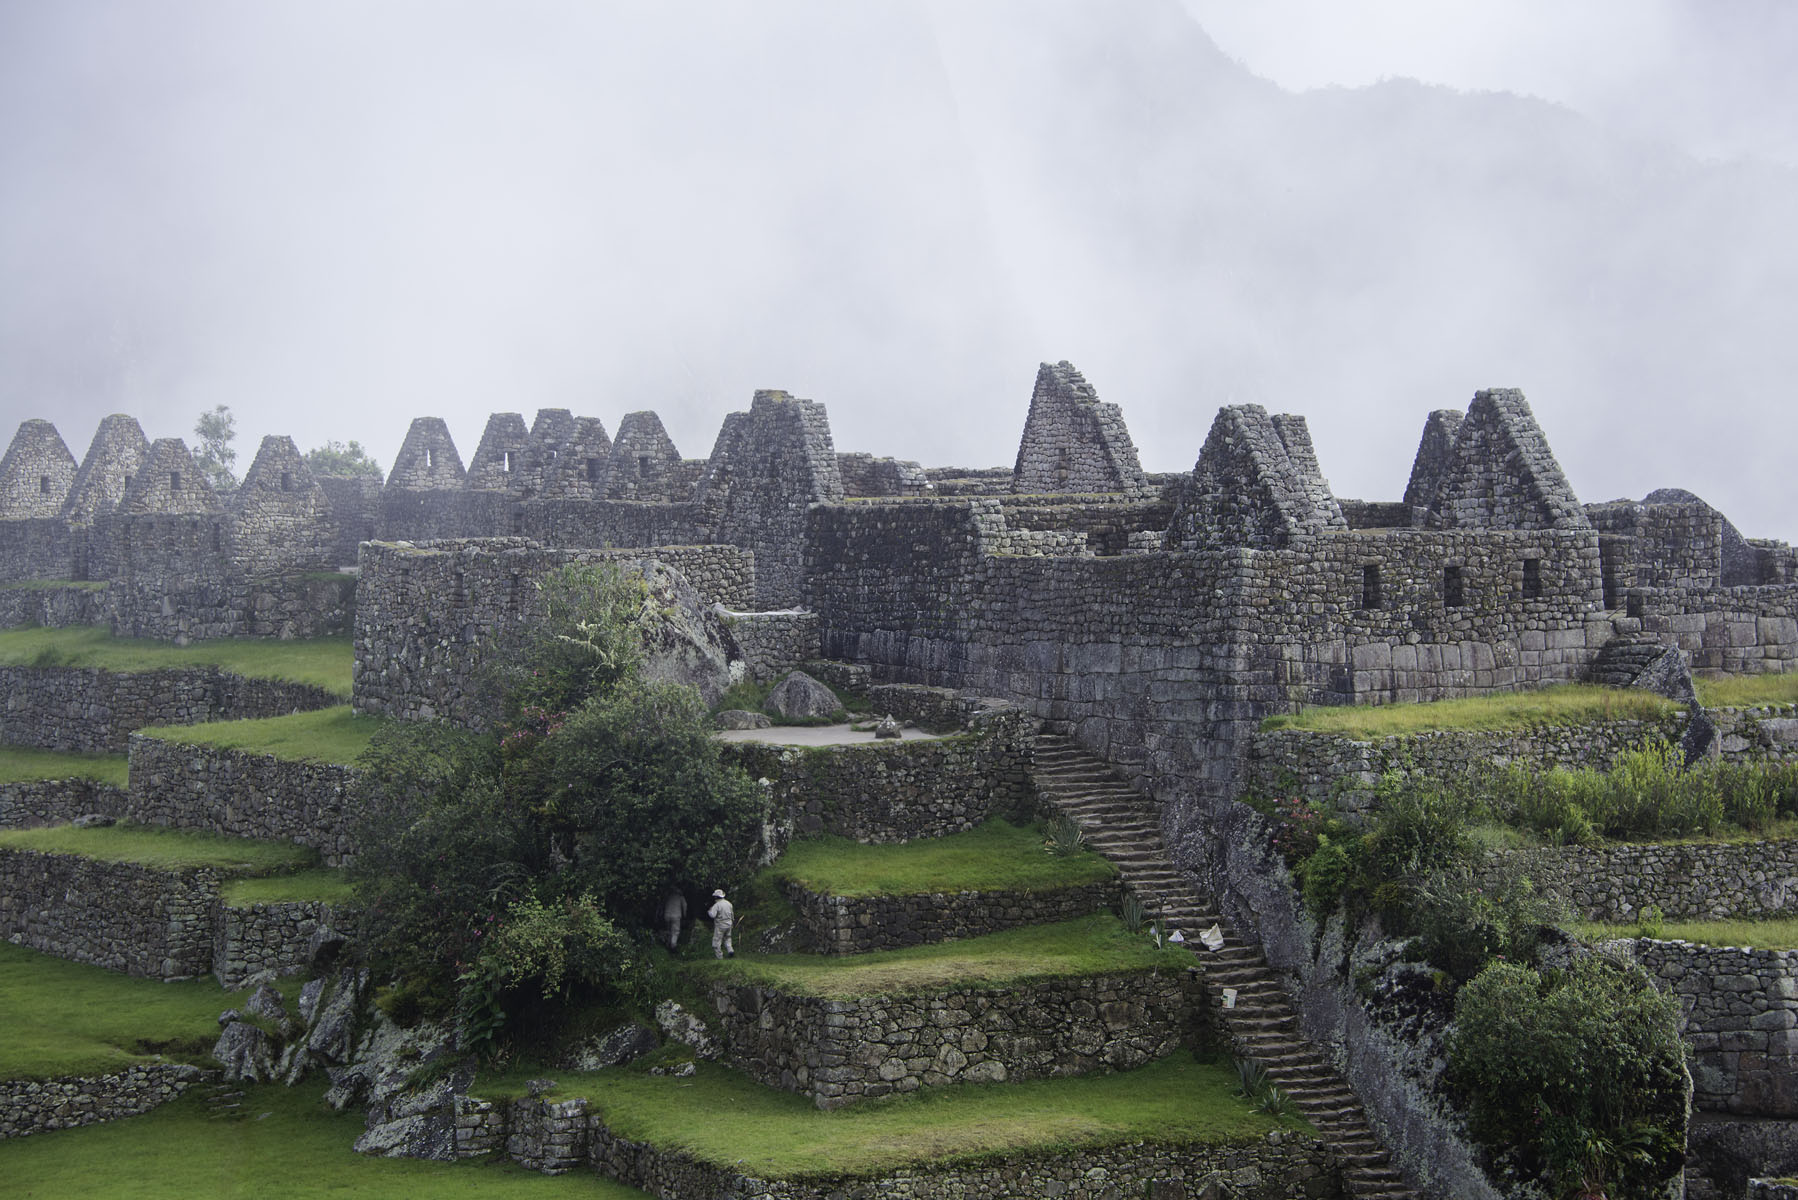 Machu Picchu Buildings in the Fog